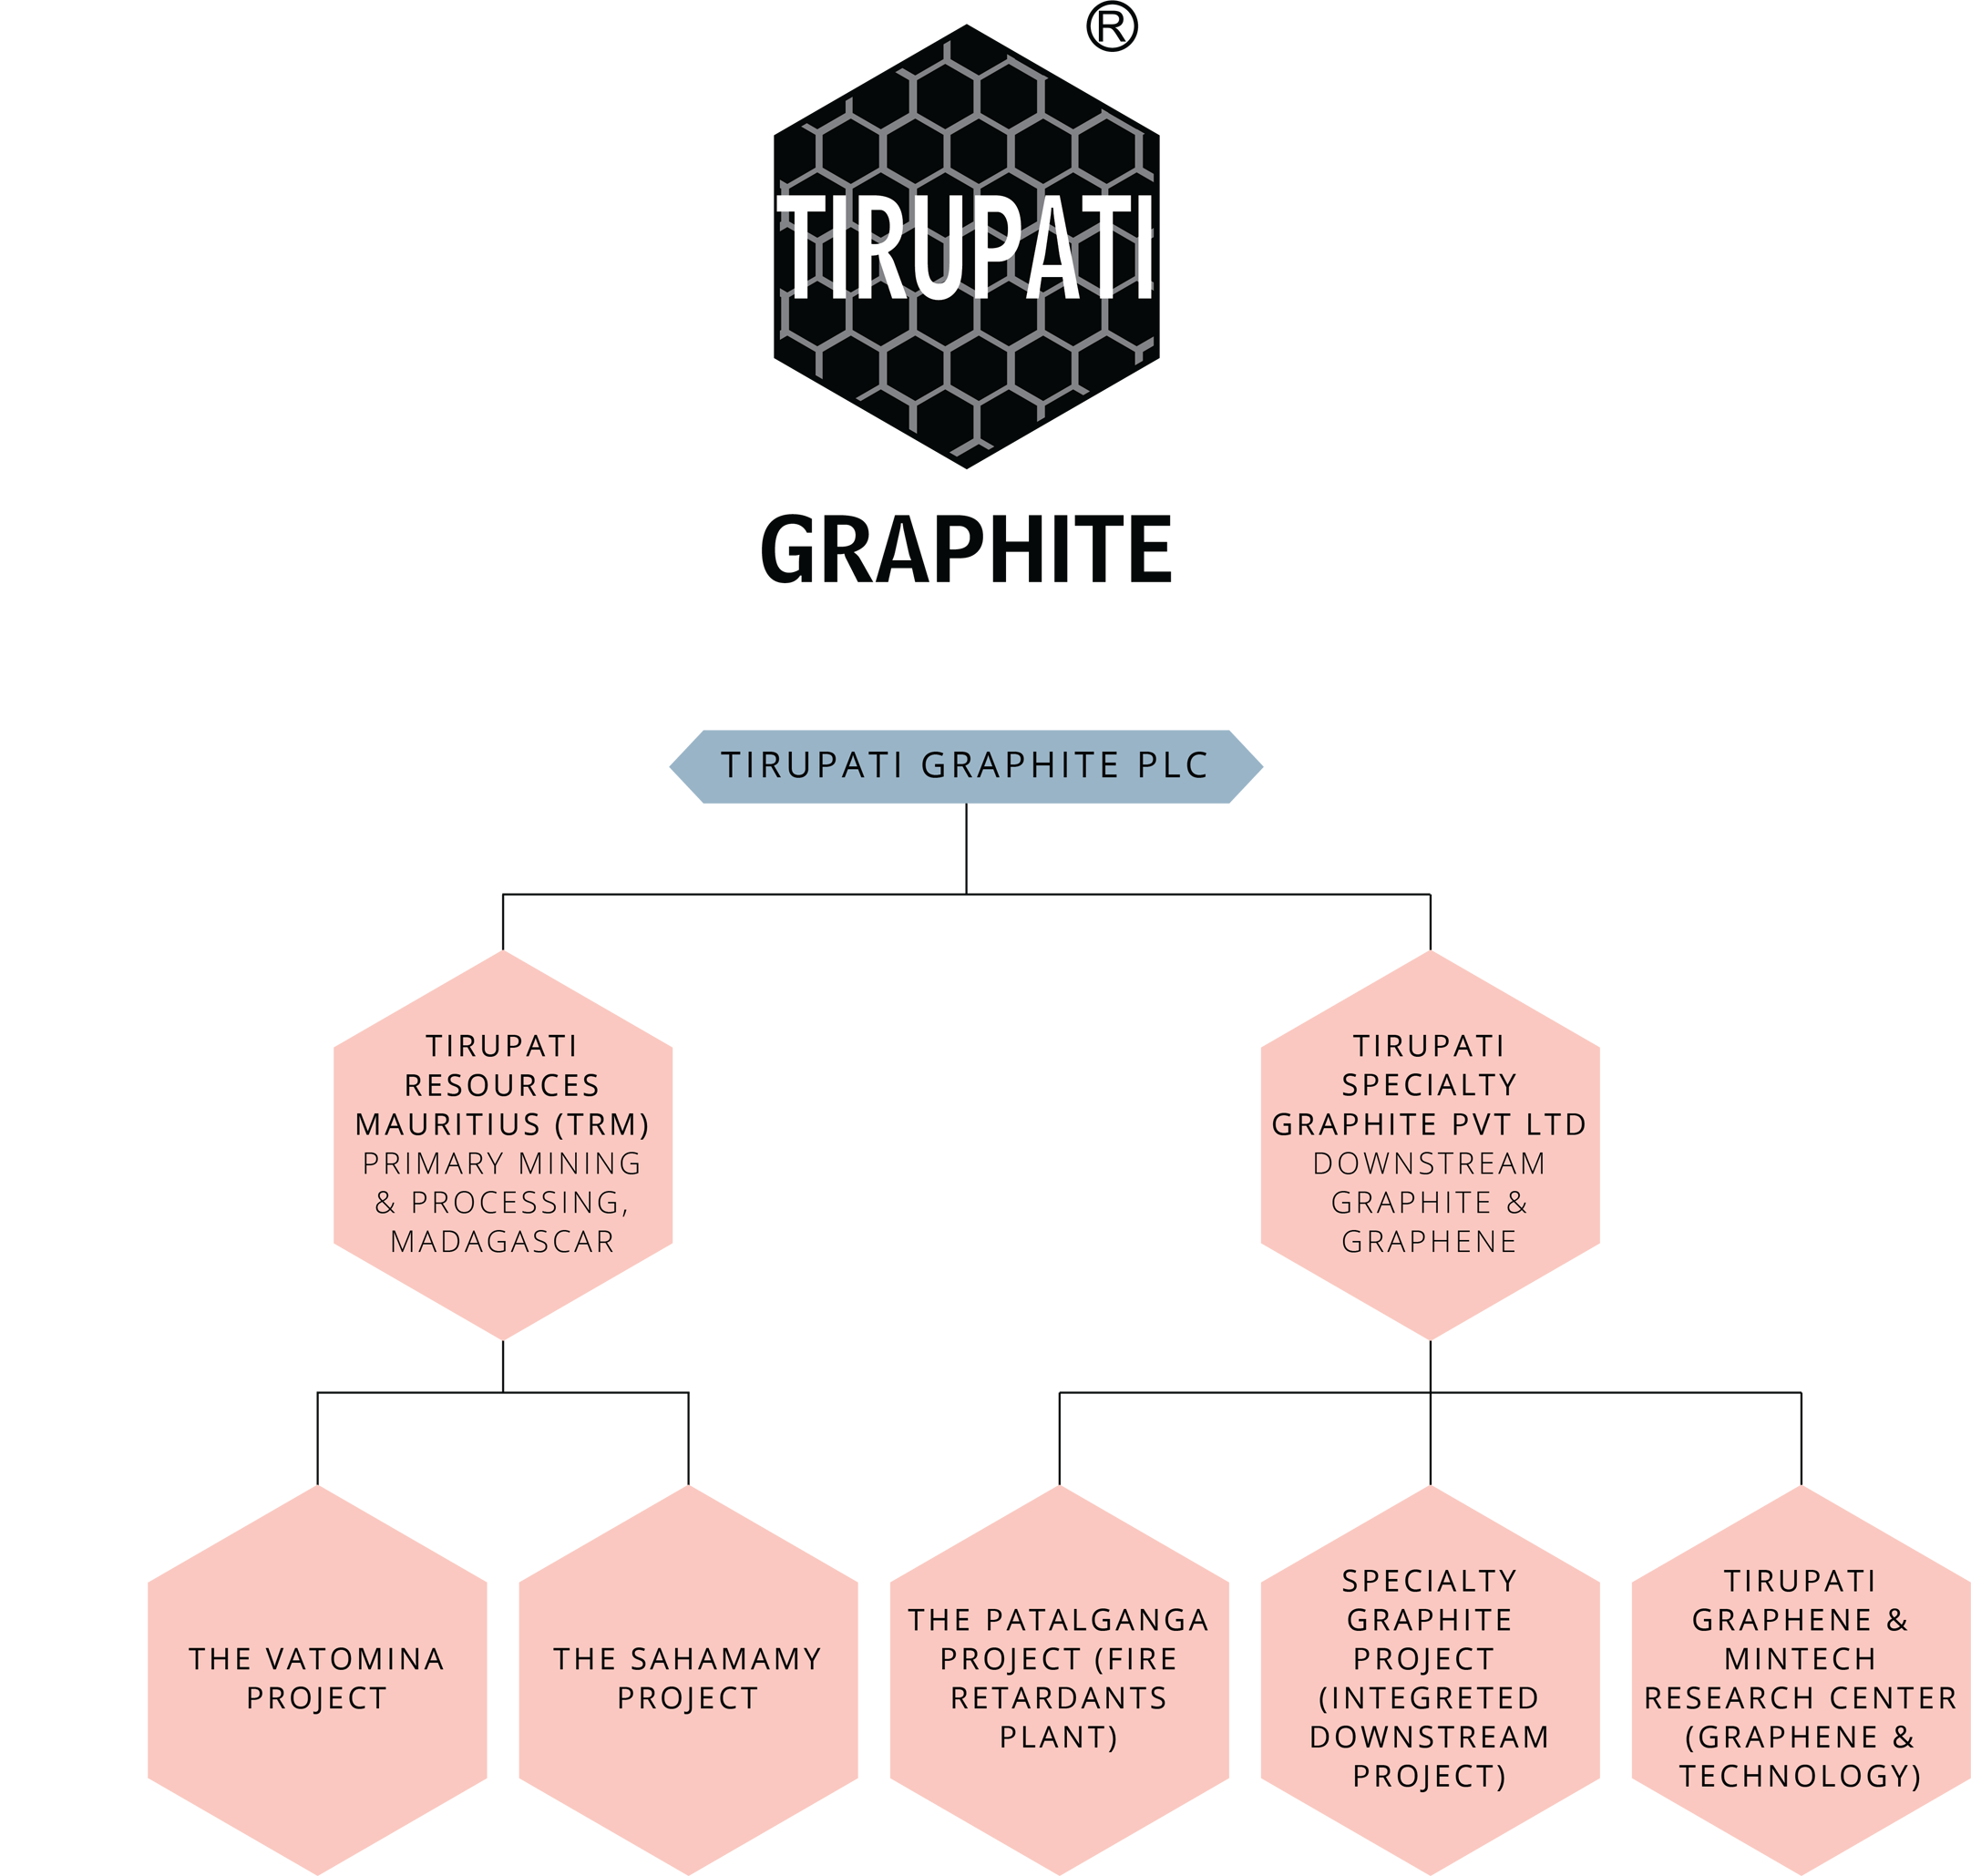 Tirupati Graphite - Corporate structure , Flake Graphite Company